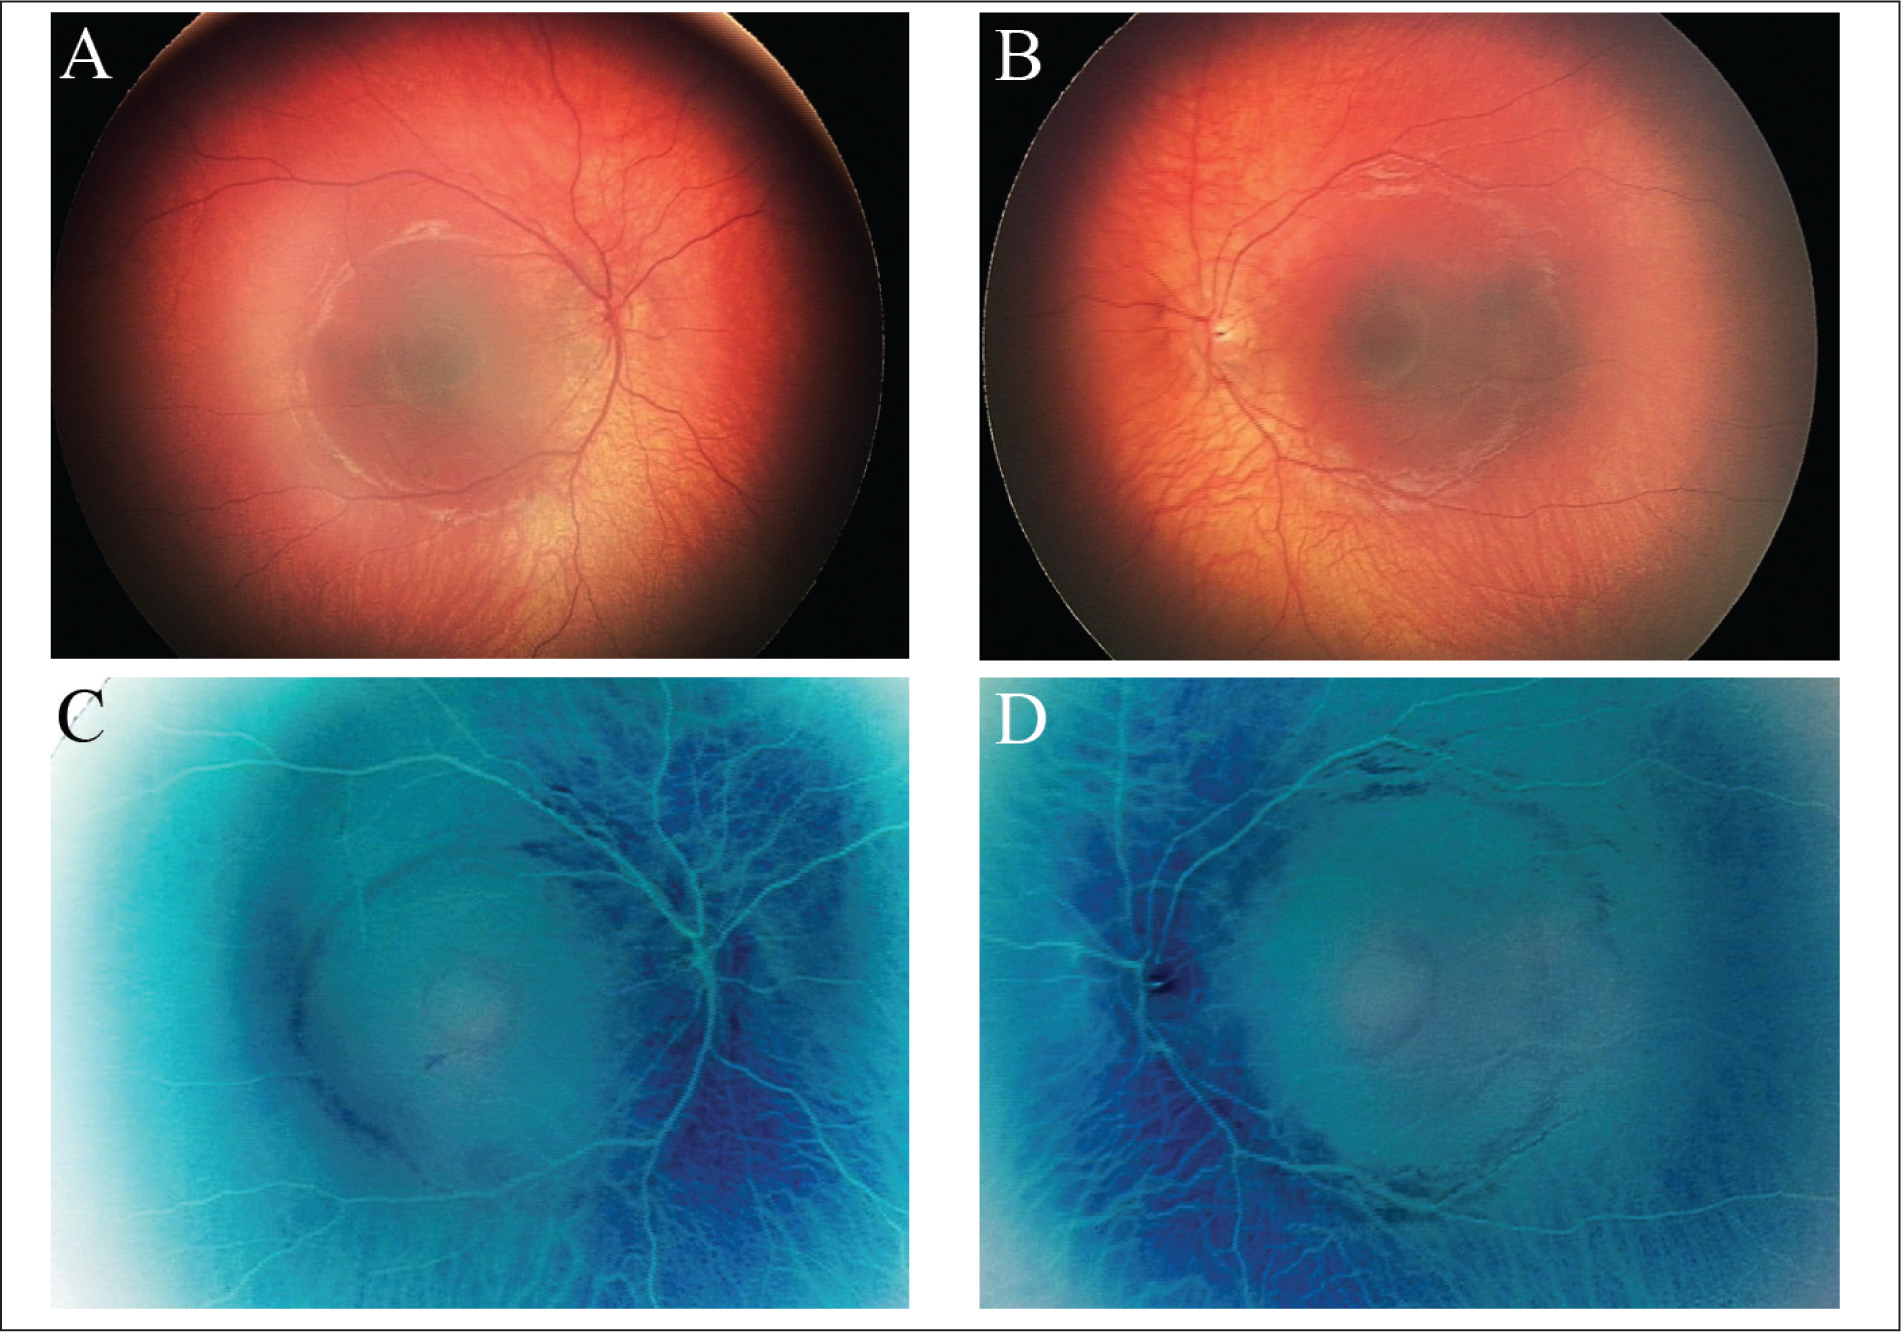 (A) Right and (B) left fundus photographs of the 10-month-old male infant (case 1) showing bilateral retinal pigment epithelial mottling and a circular macular lesion. Color negative fundus images of the (C) right and (D) left eyes.